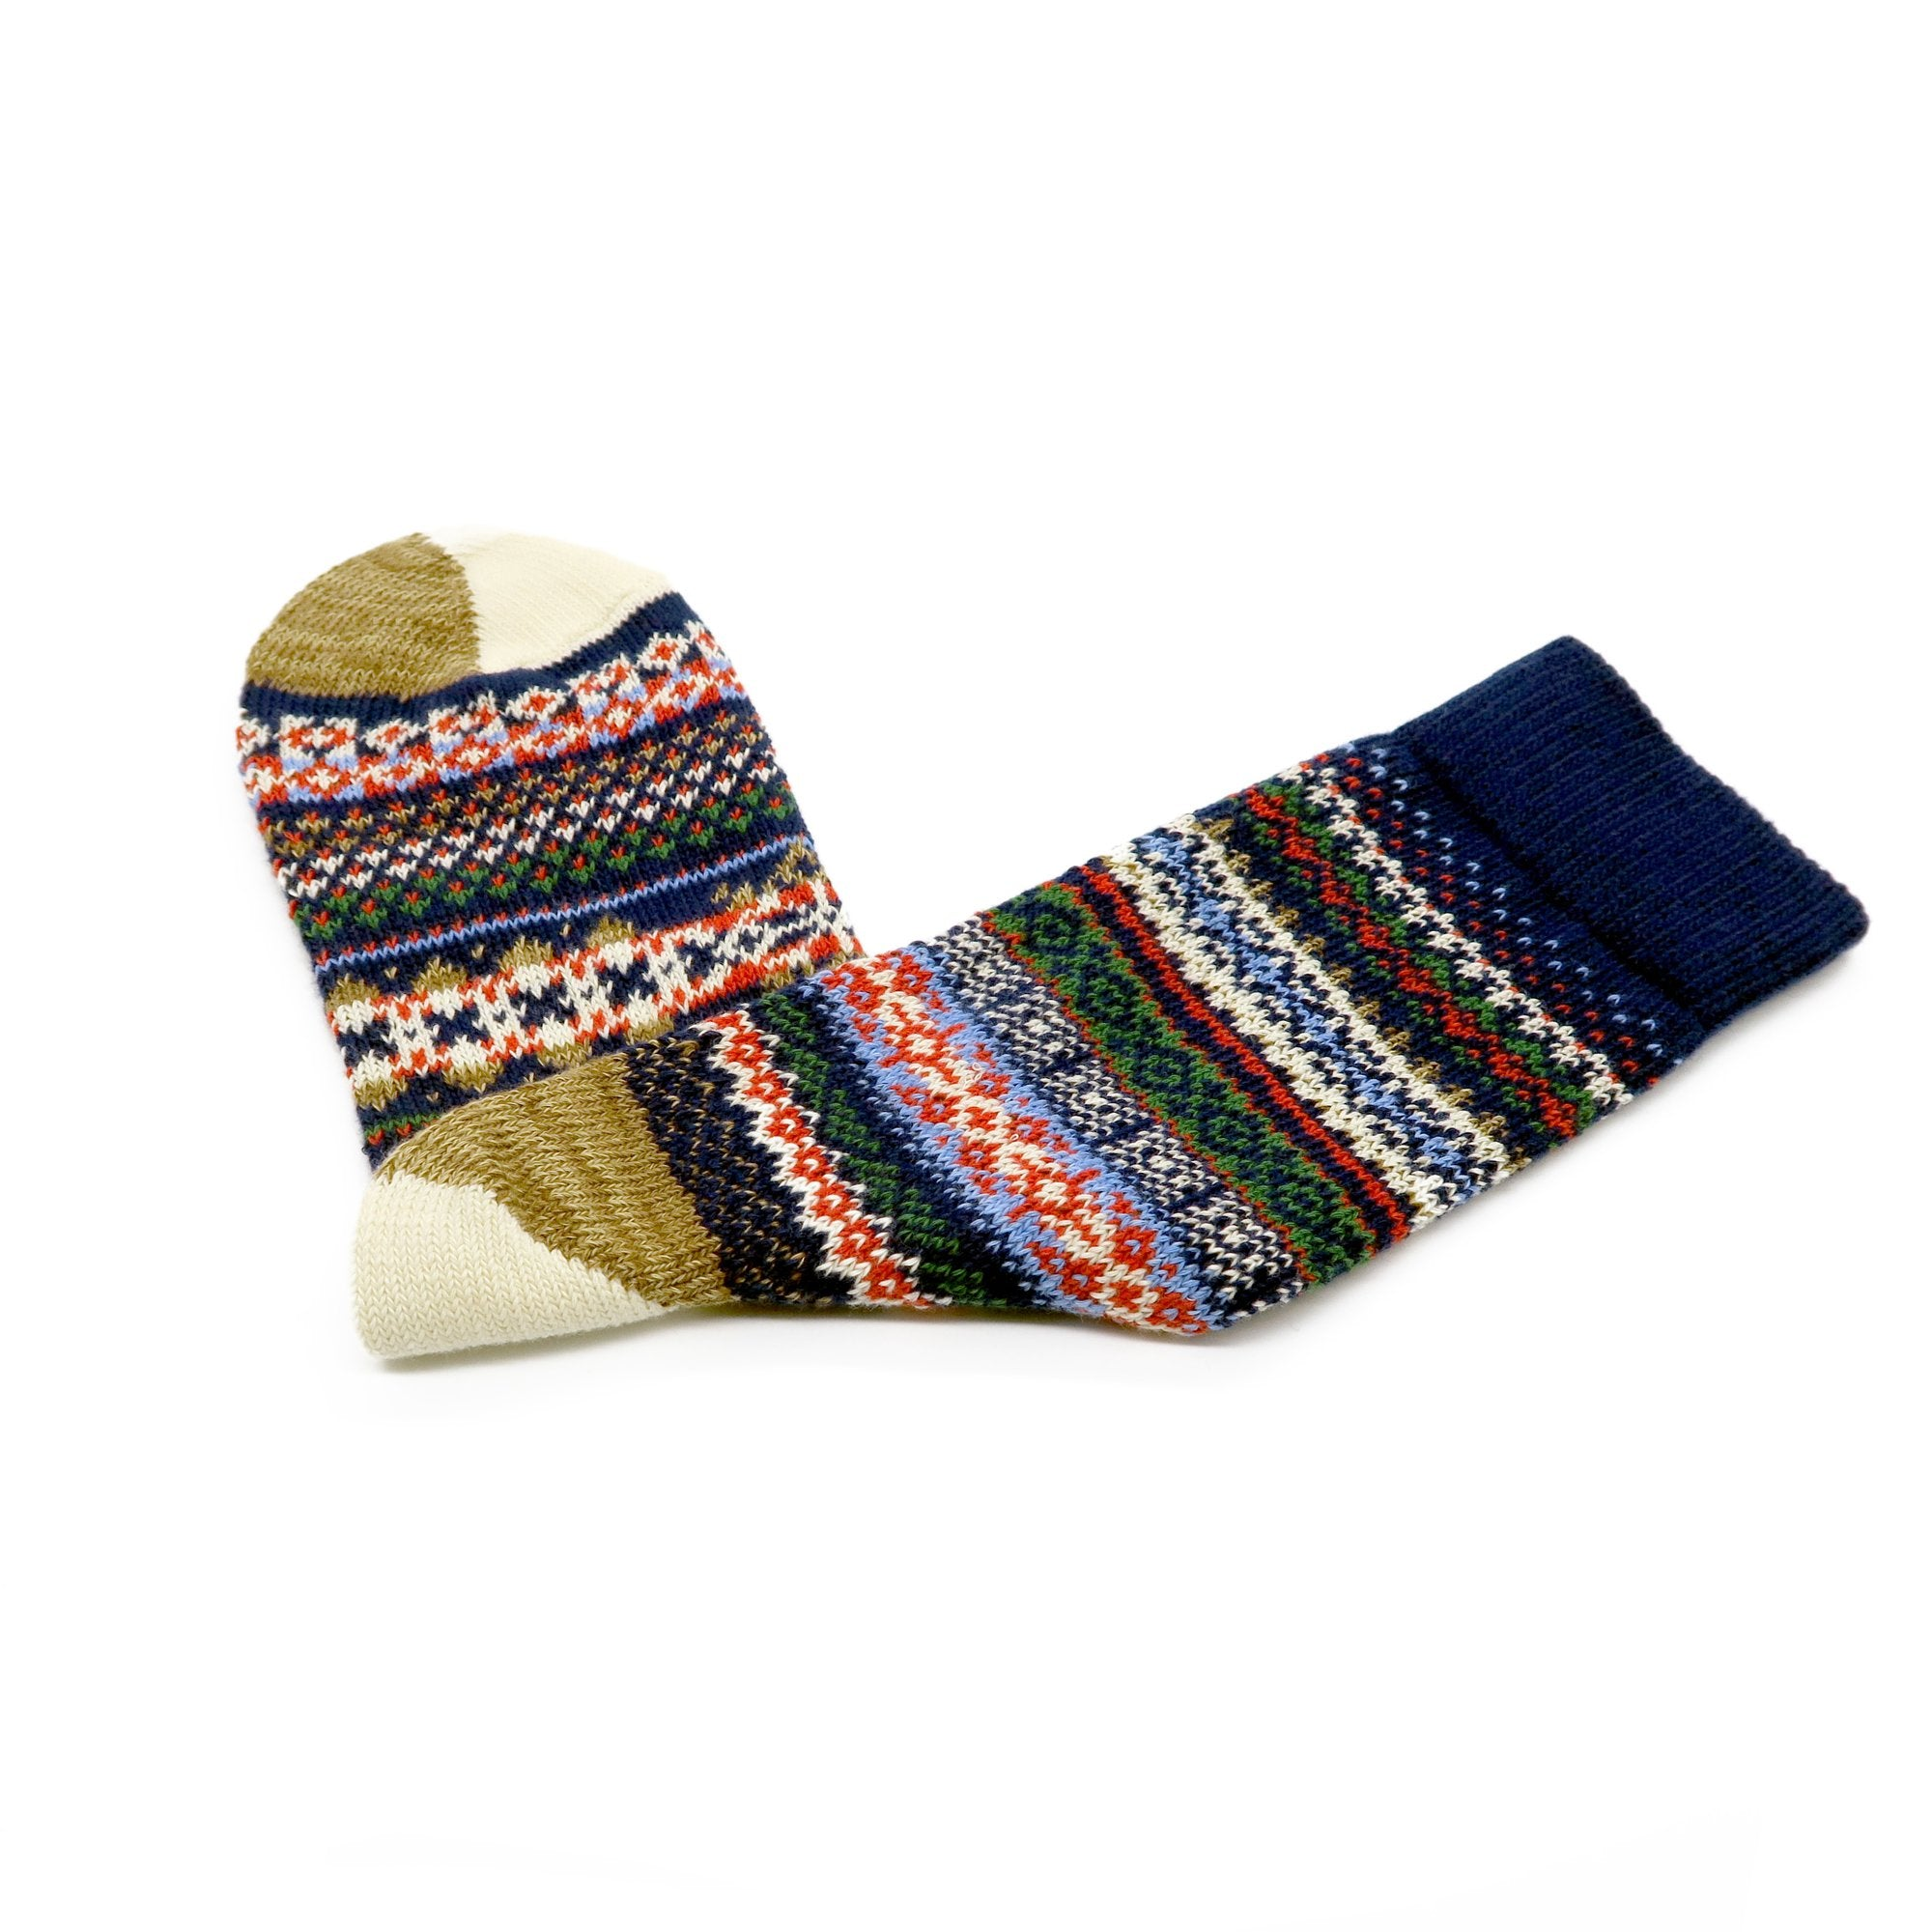 Norwegian Wood Socks